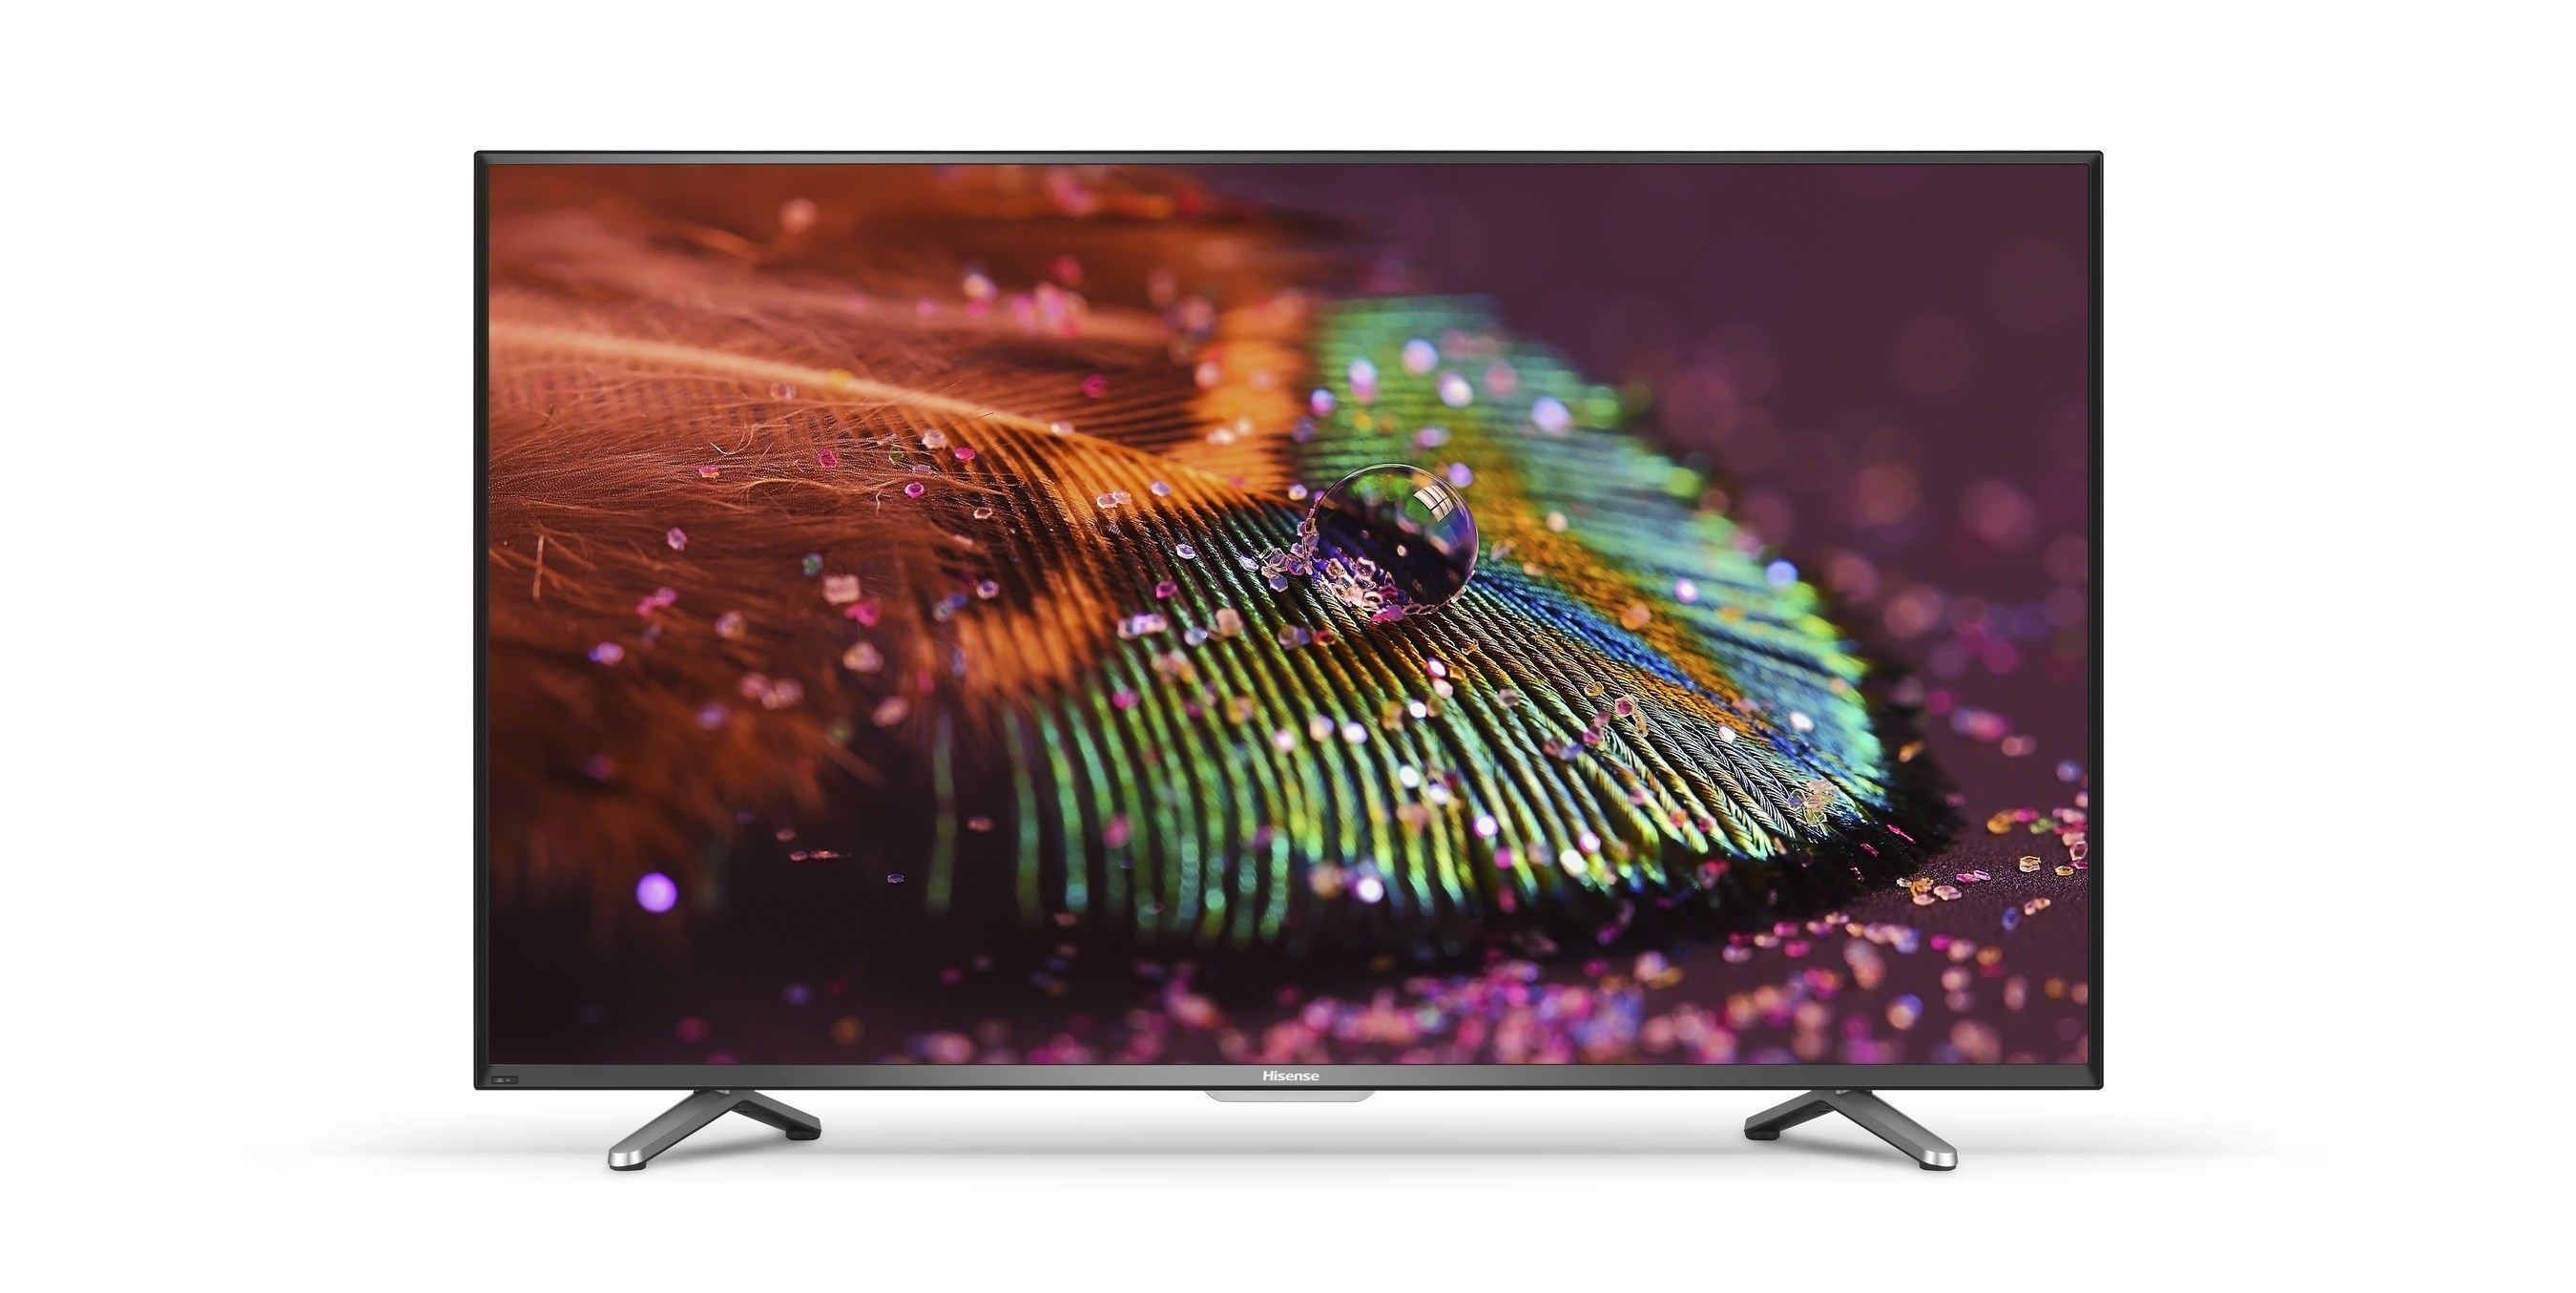 "The Hisense H7 Series 50"" 4K UltraHD Smart TV will be available in over 2,000 Walmart stores and on Walmart.com for the affordable price of $598 beginning in June."